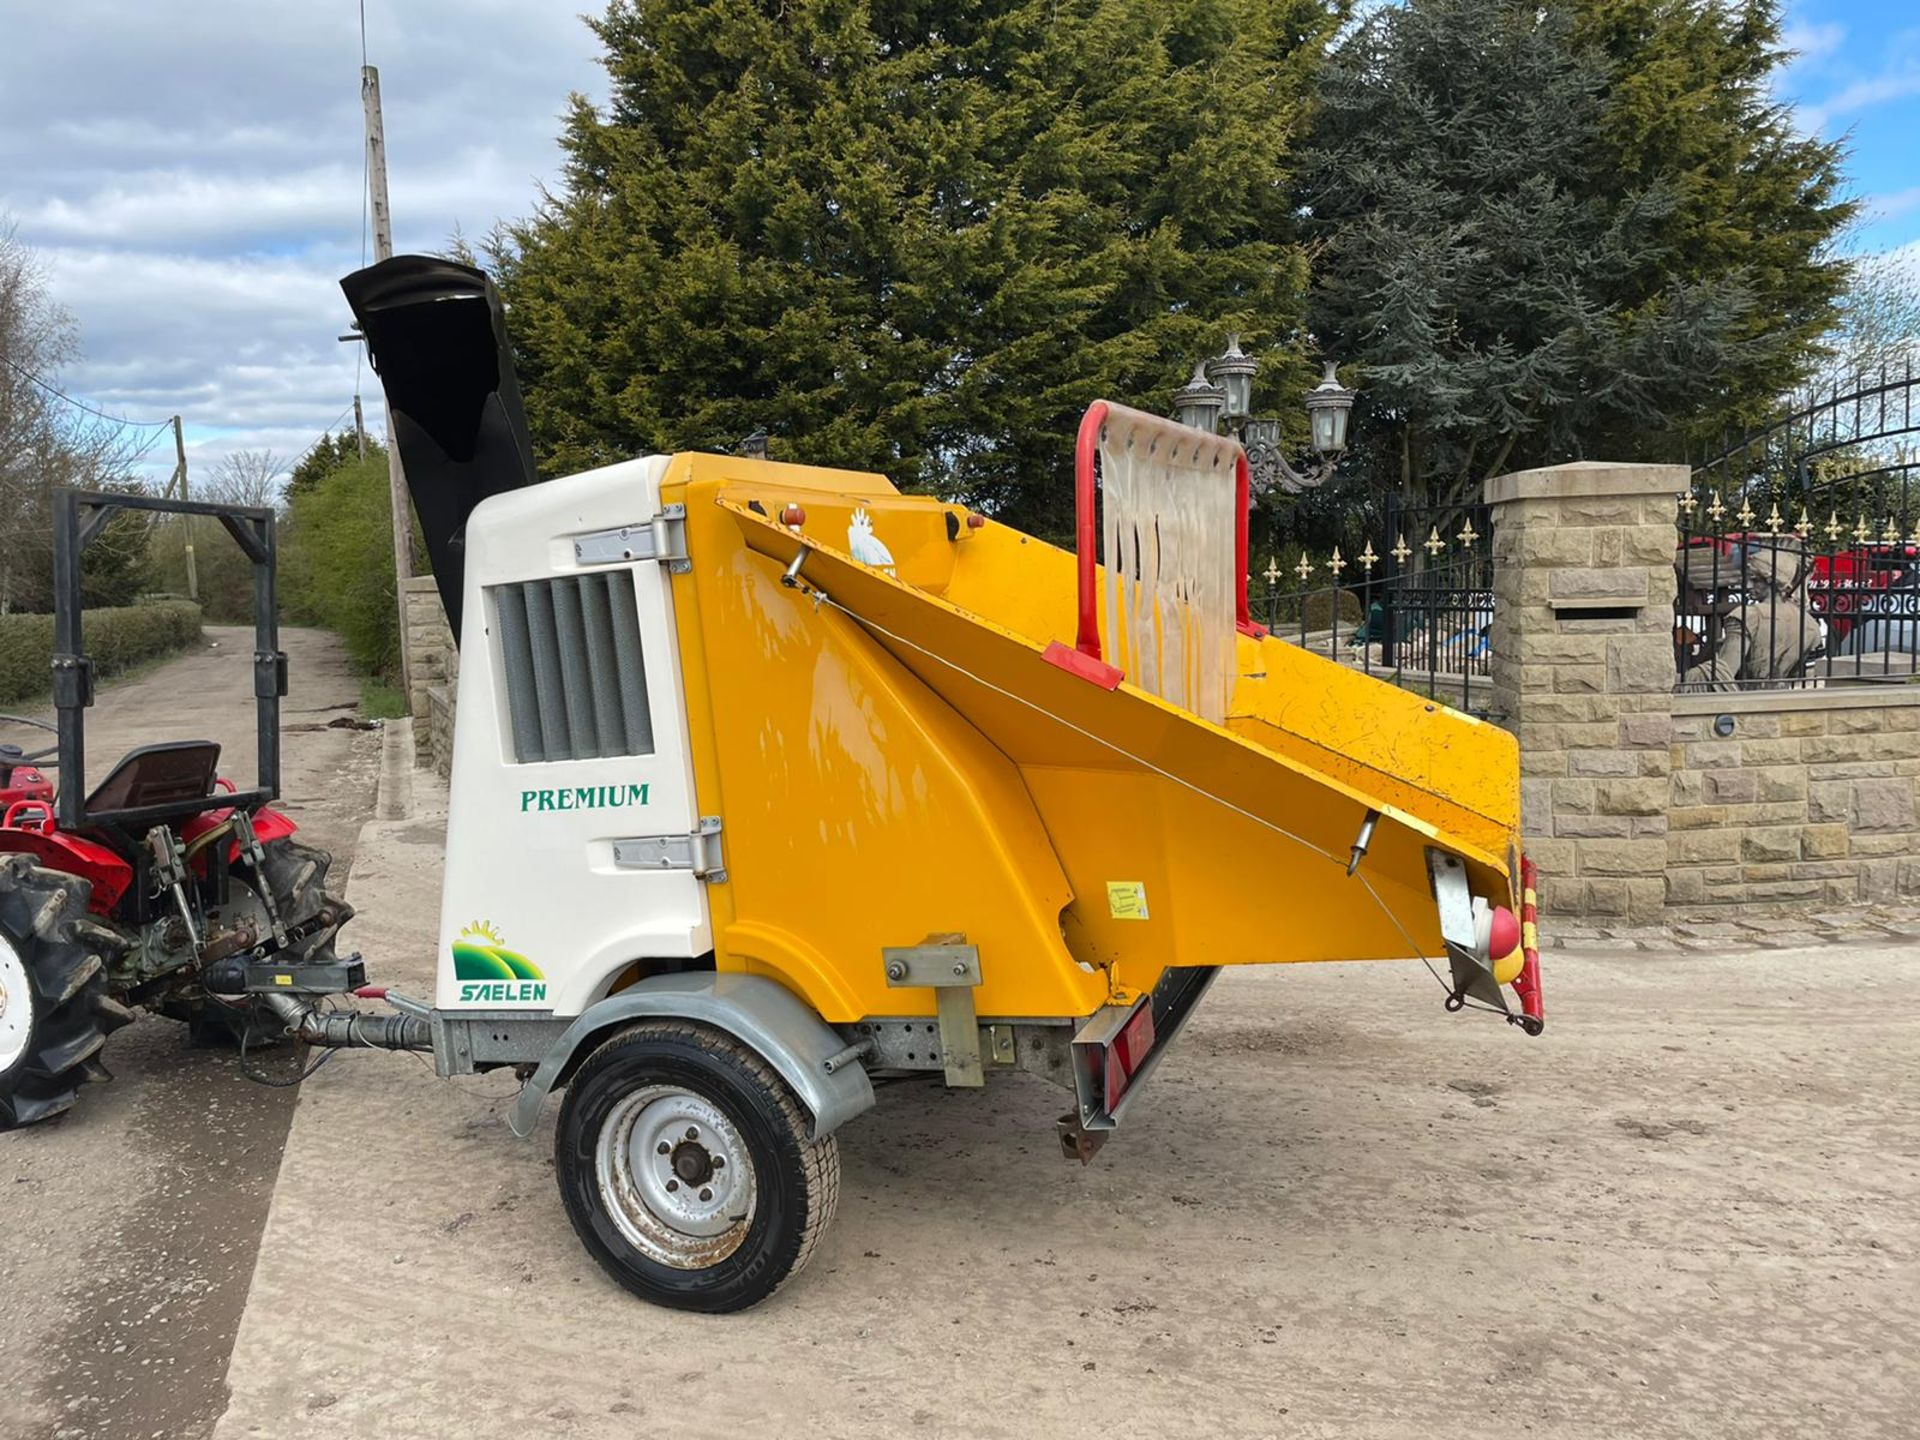 2007 SAELEN PREMIUM WOOD CHIPPER, RUNS AND CHIPS, IN GOOD CONDITION, LOW 160 HOURS *PLUS VAT* - Image 2 of 7